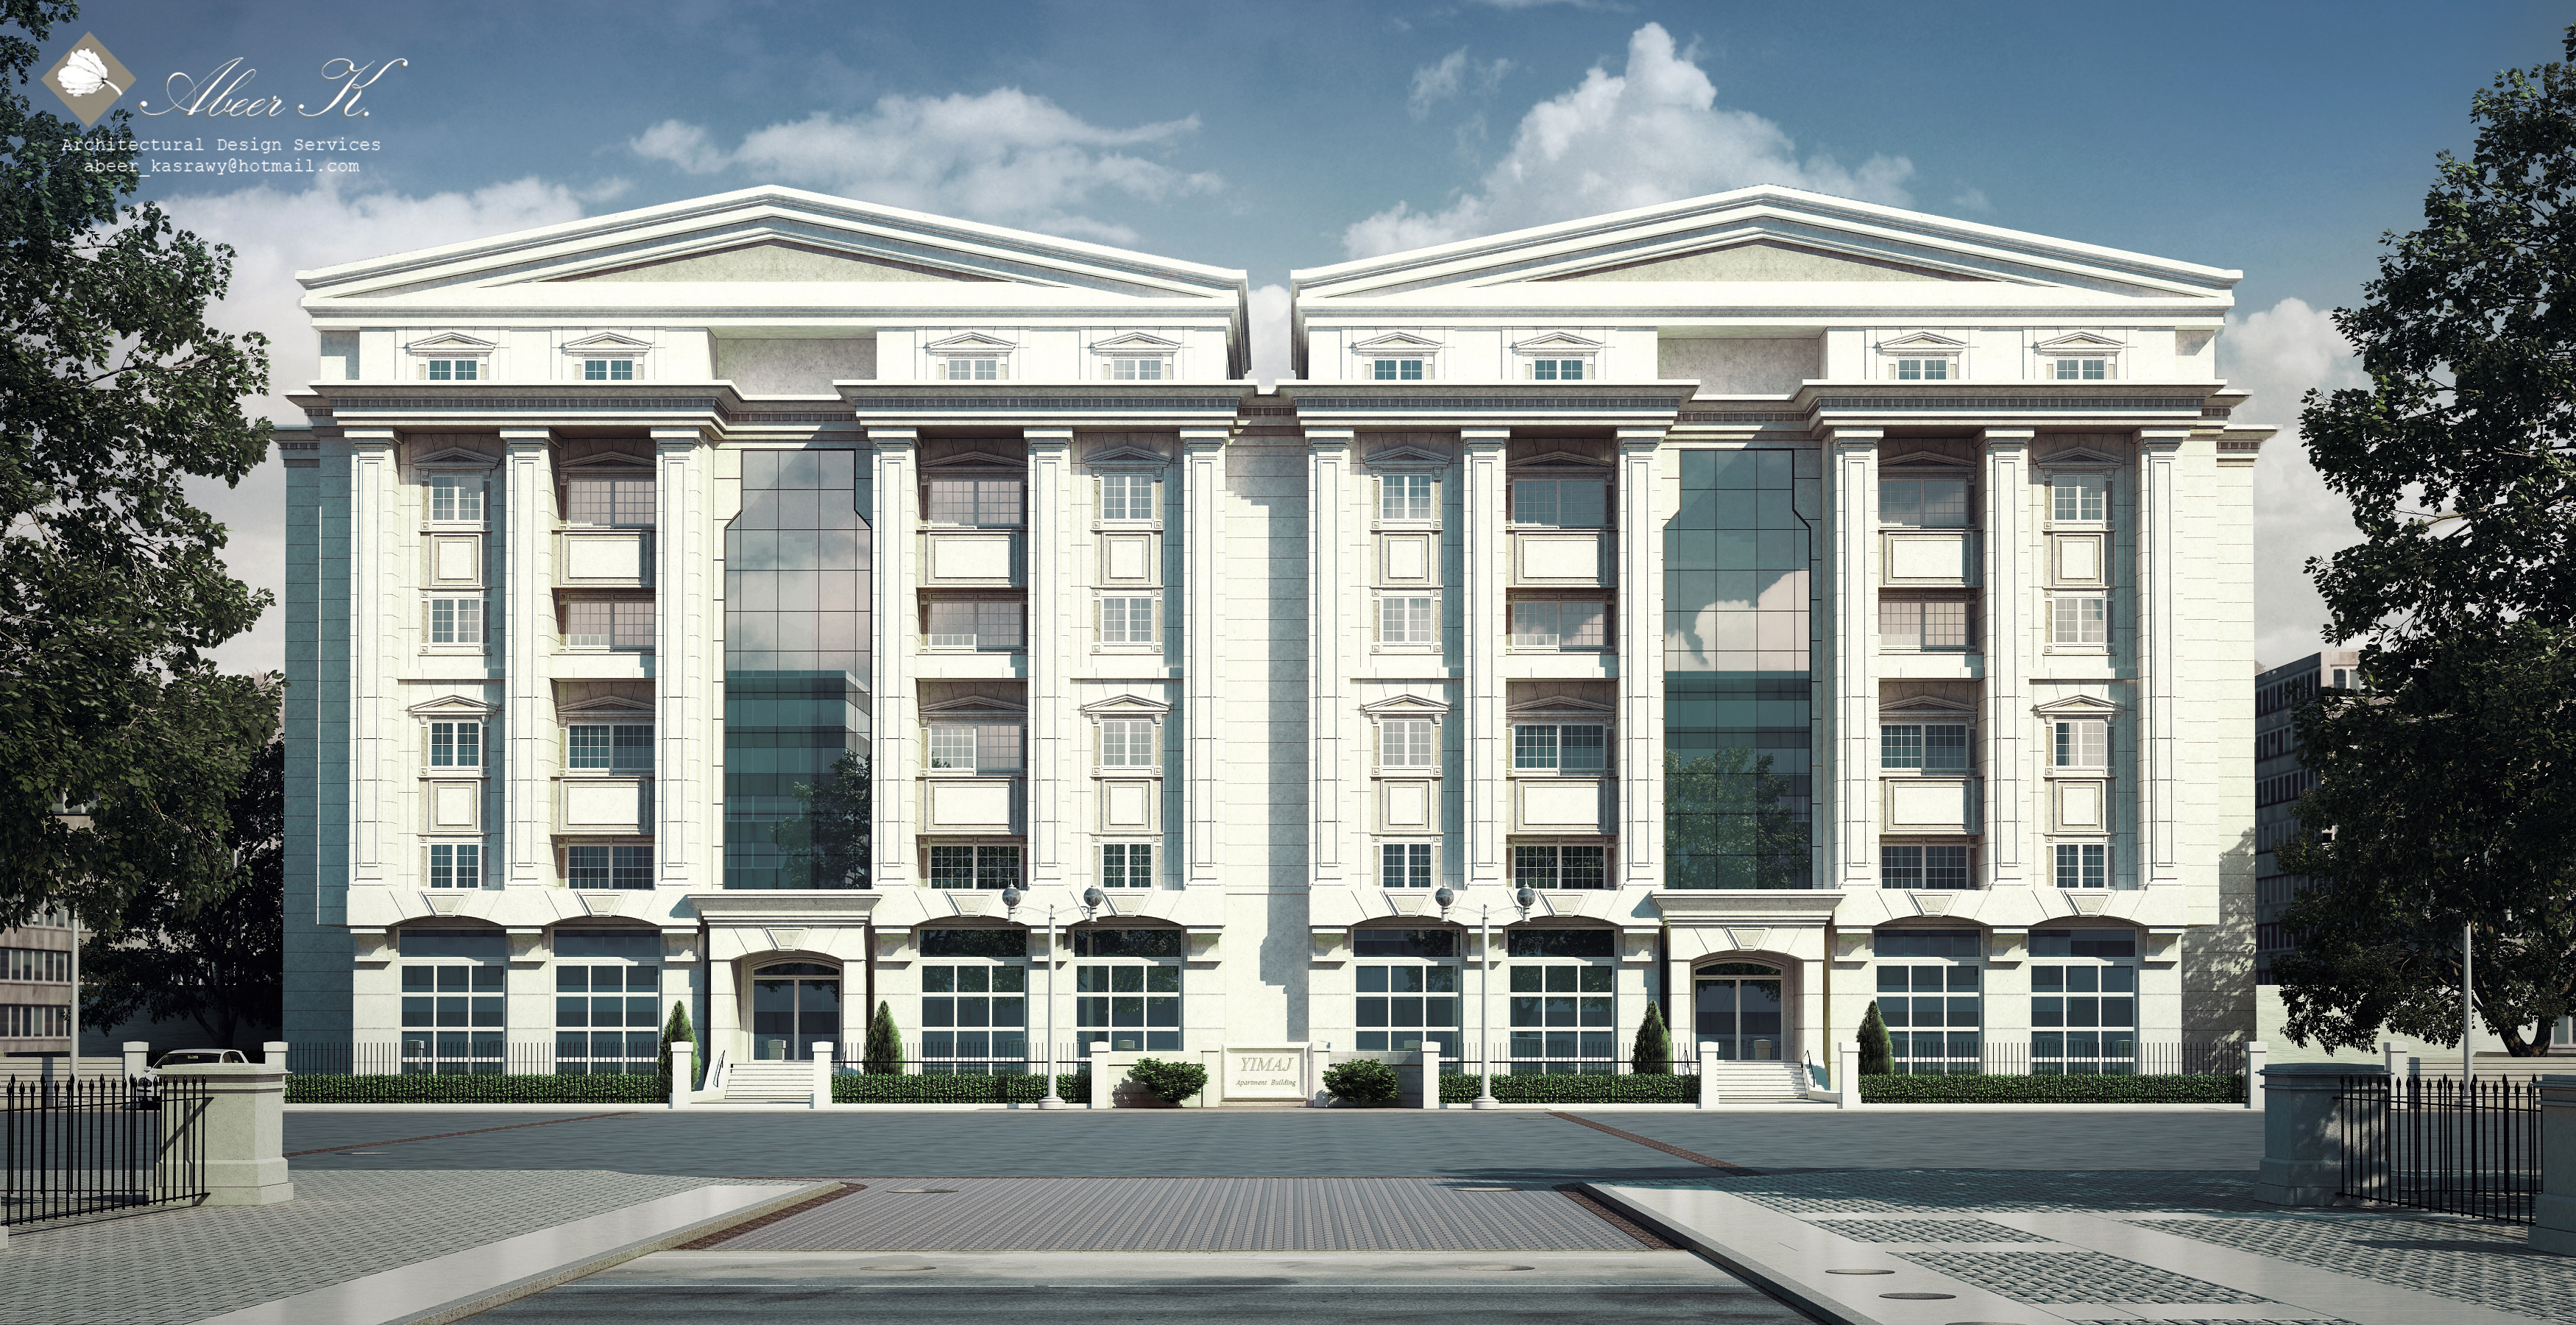 Classic apartment building by kasrawy on deviantart for Modern classic building design